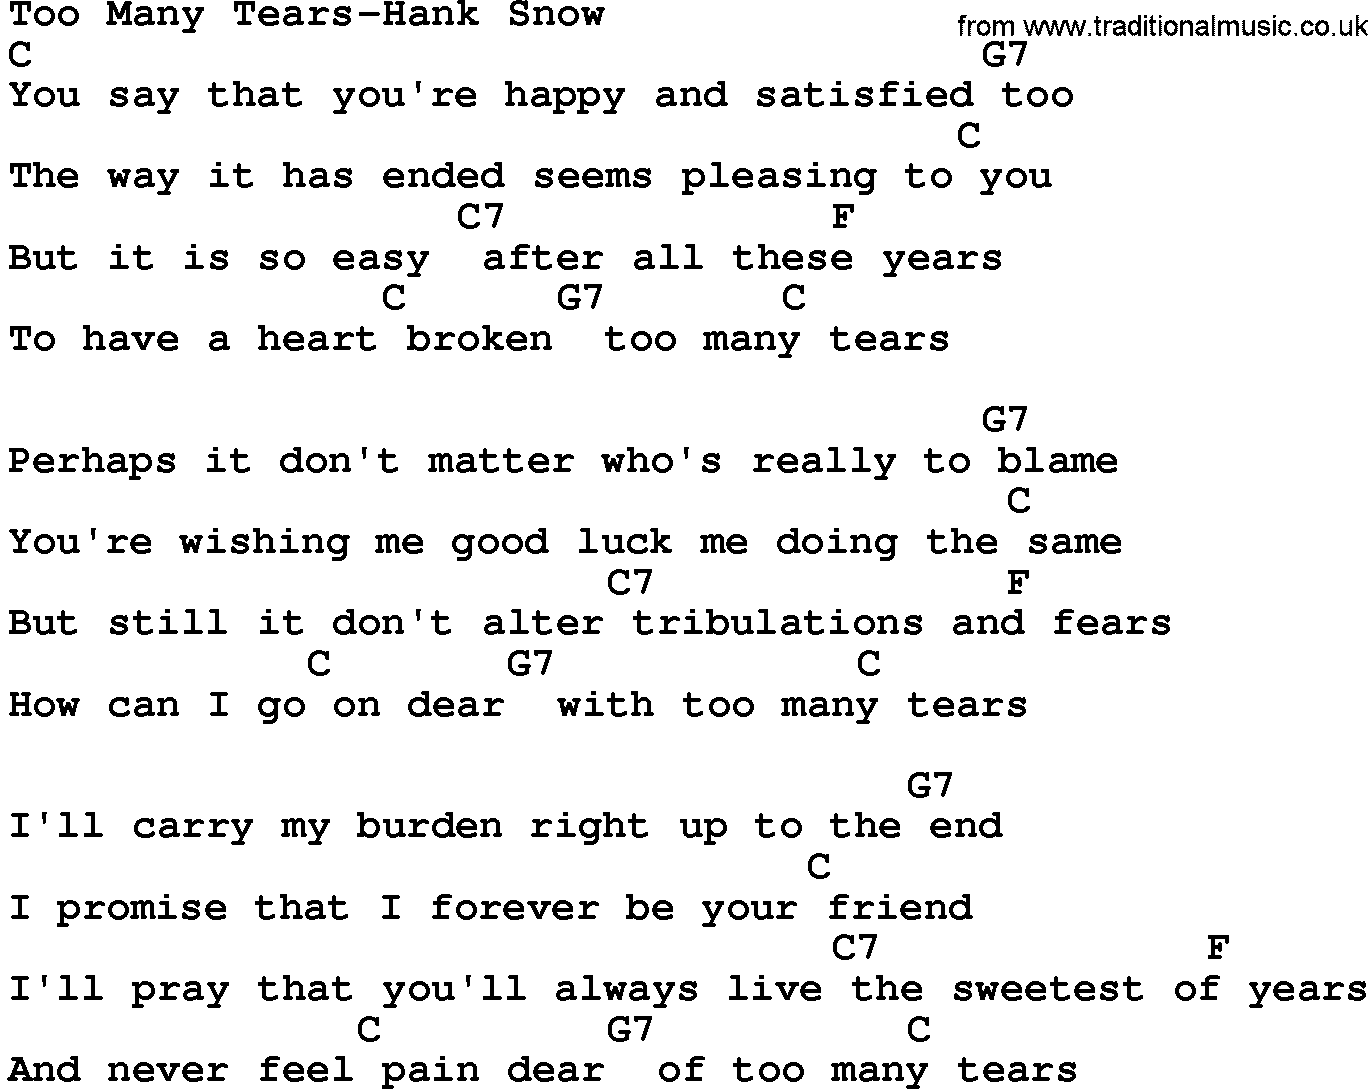 Country Music:Too Many Tears-Hank Snow Lyrics and Chords